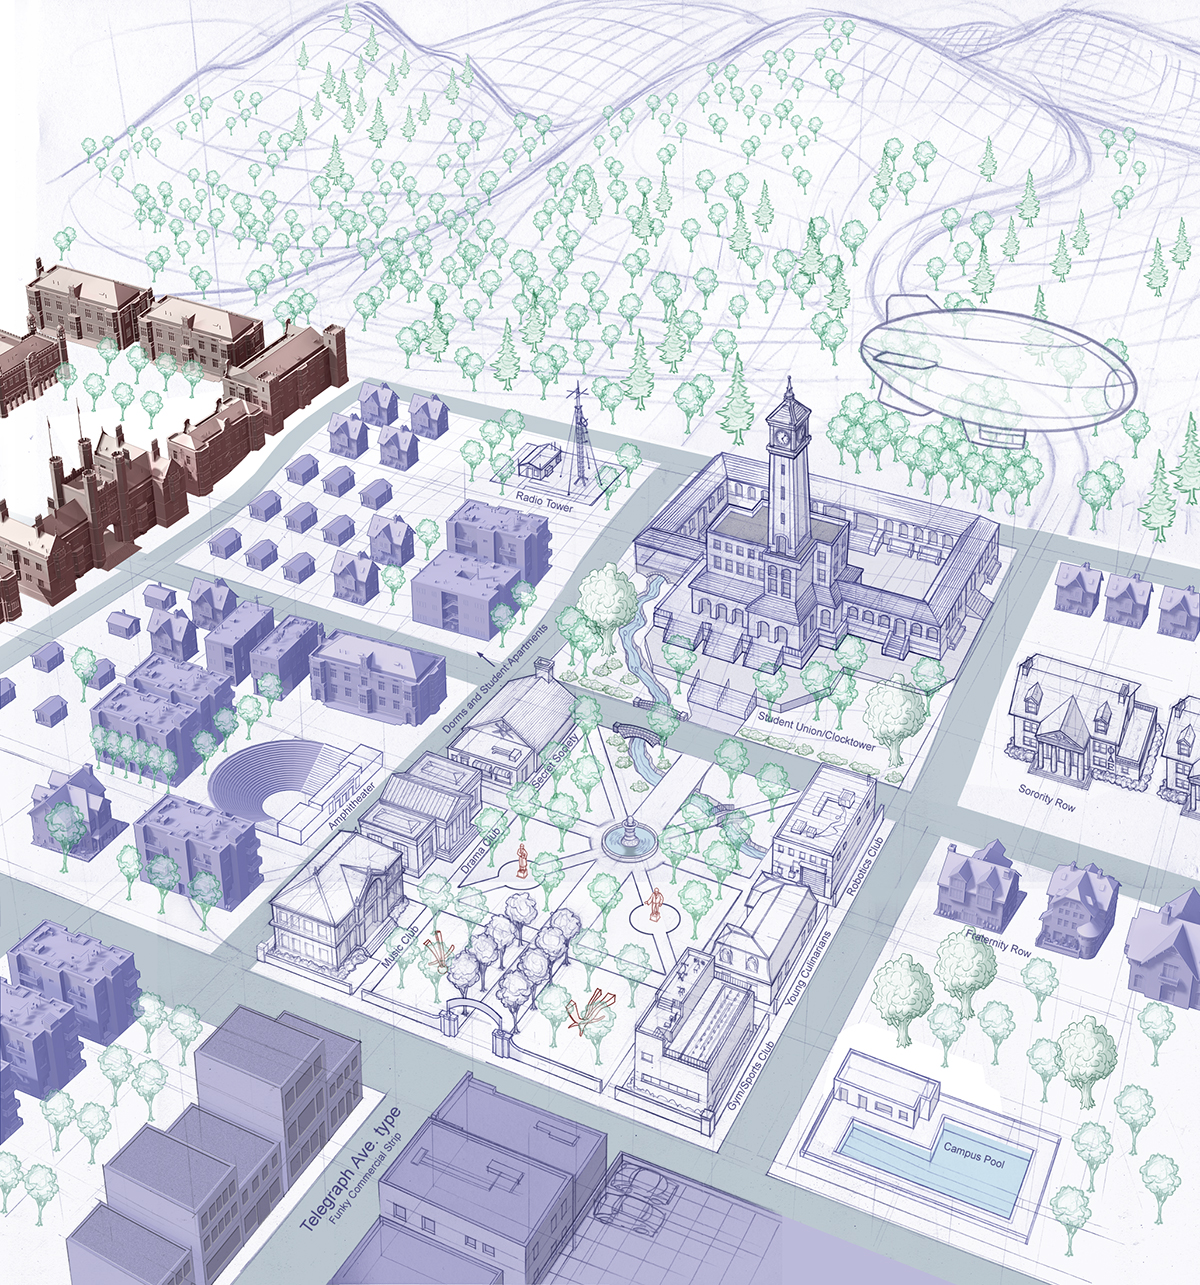 Campus Layout for the Sims 2: University EP